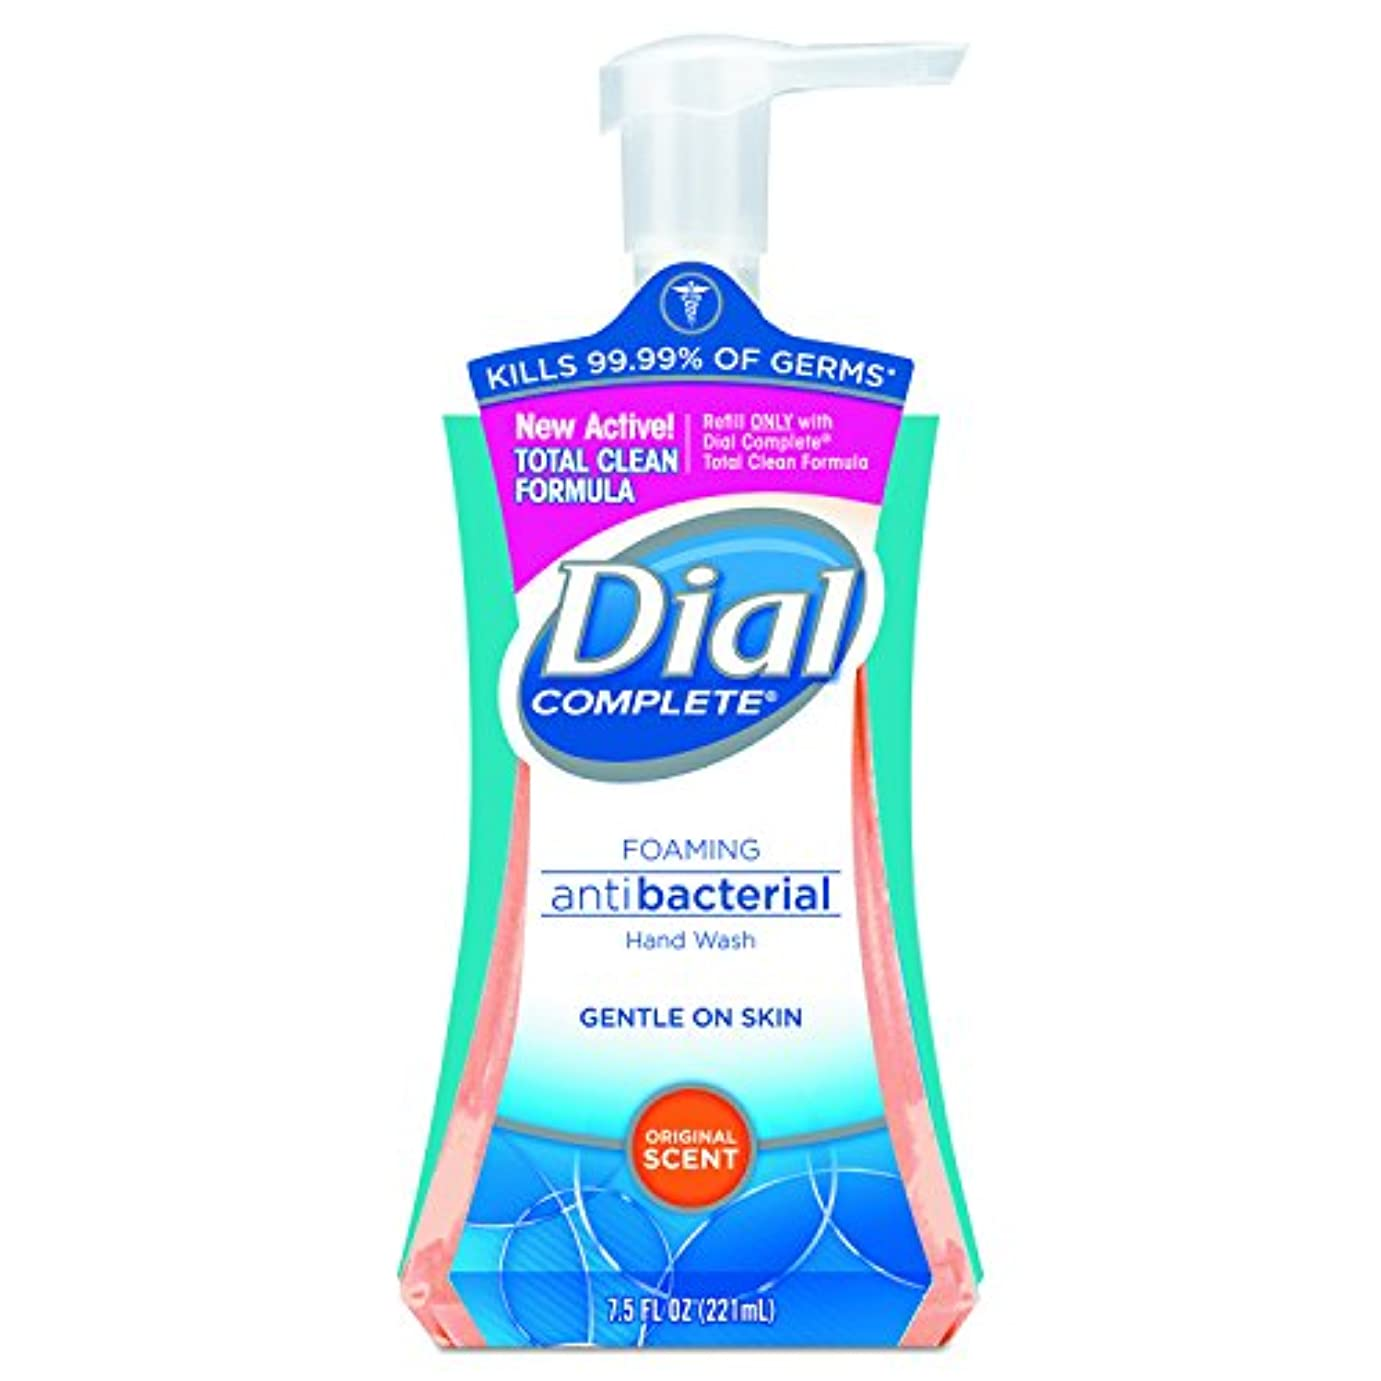 Dial Complete Foaming Hand Wash, Liquid, Fresh Scent, 7.5 oz Pump Bottle, 8/Carton